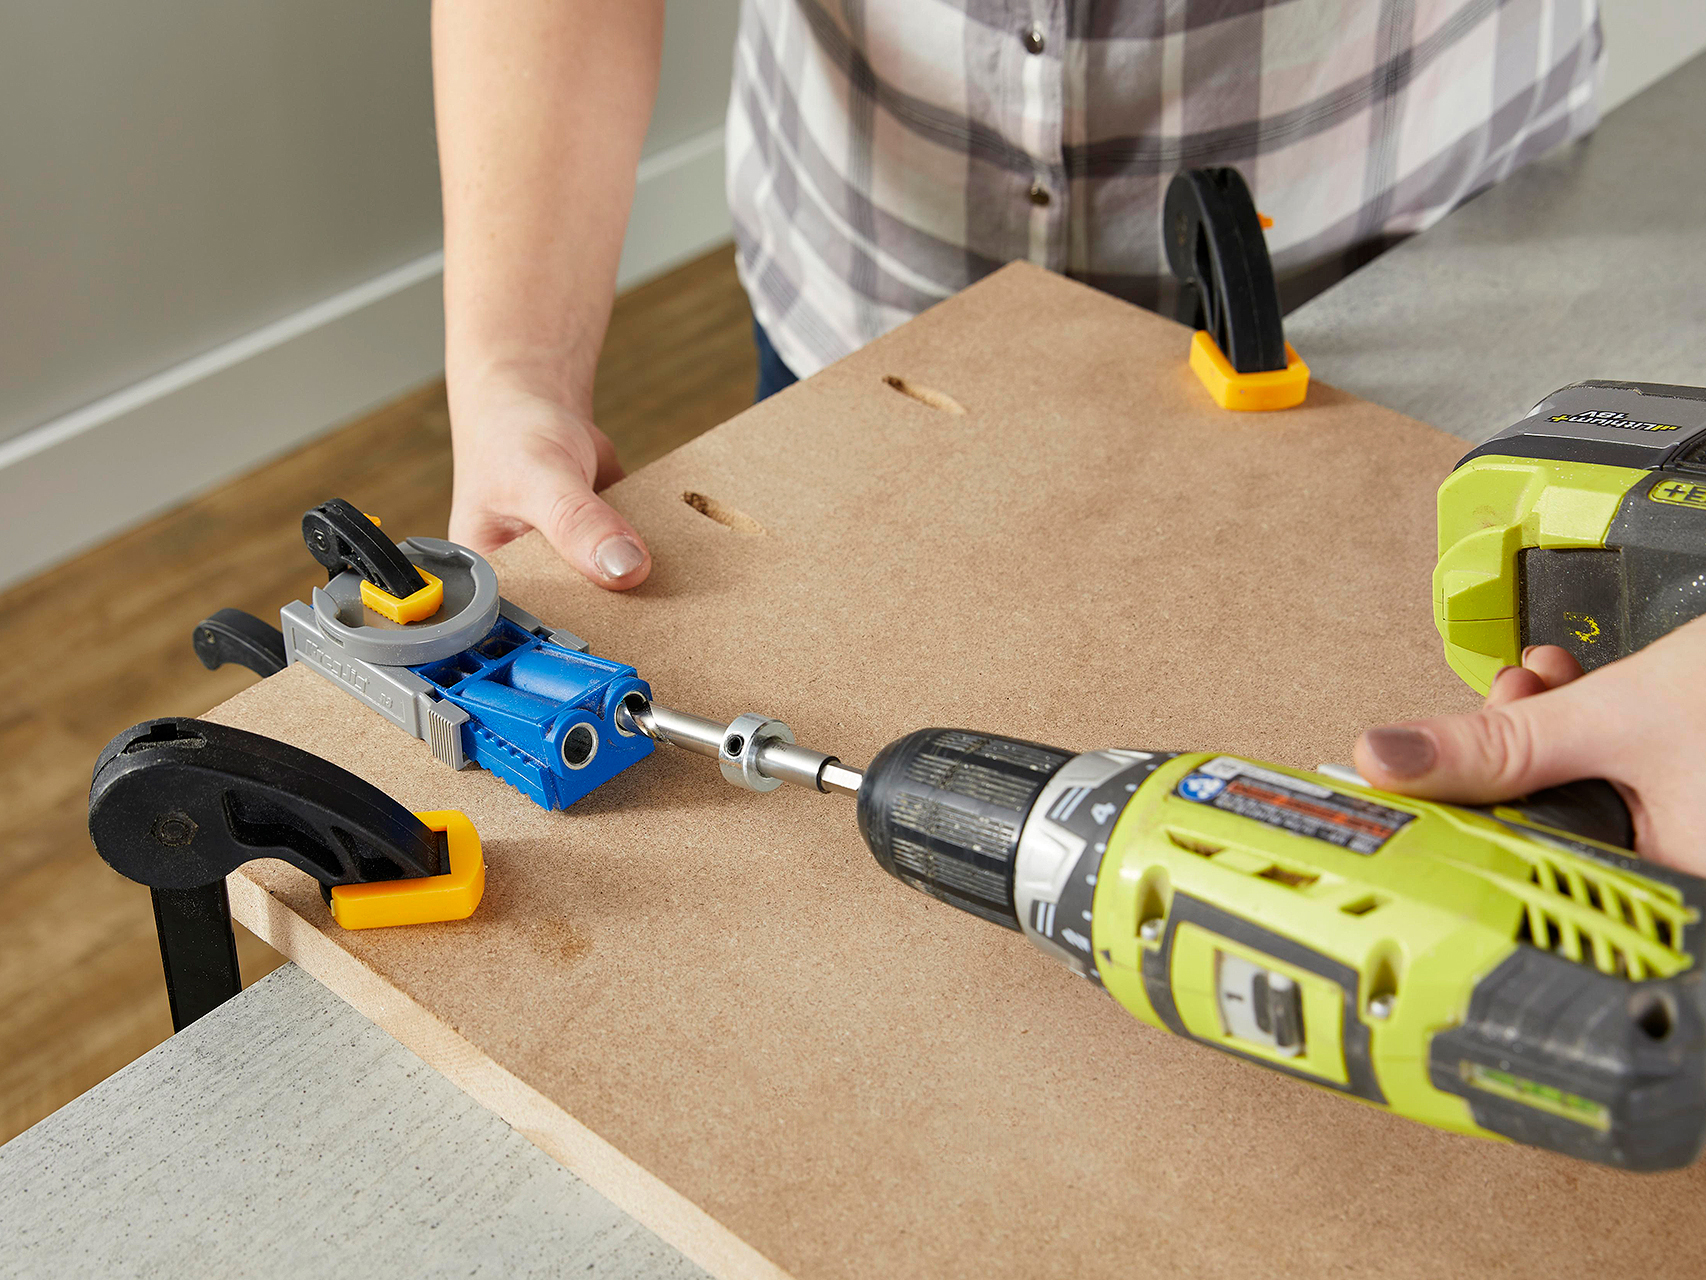 drill holes into wood with pocket hole jig